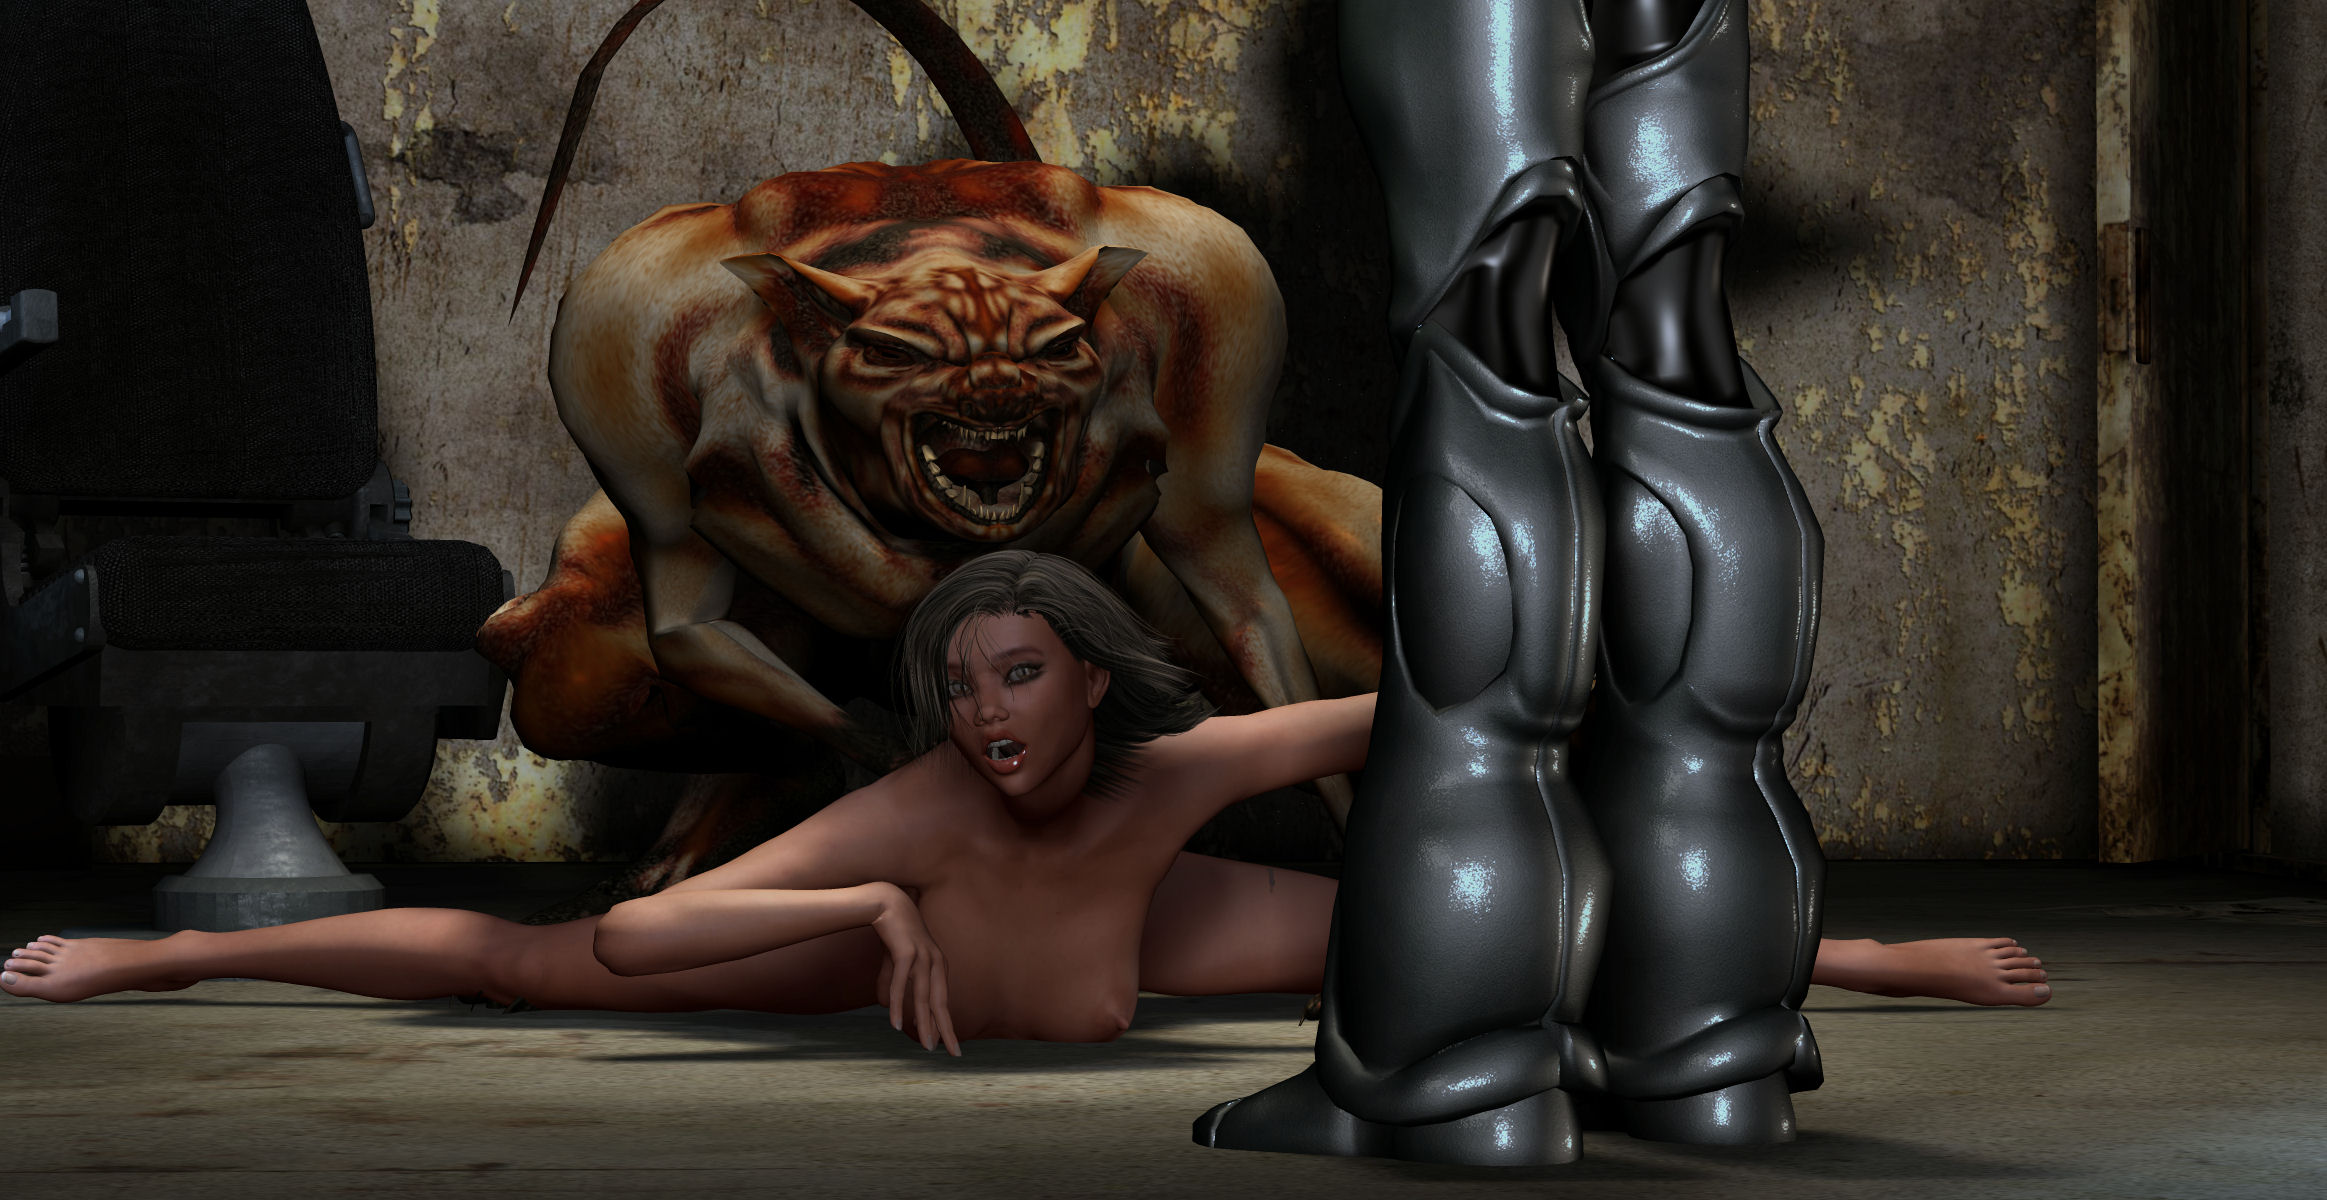 Male 3d monster porn erotica scenes